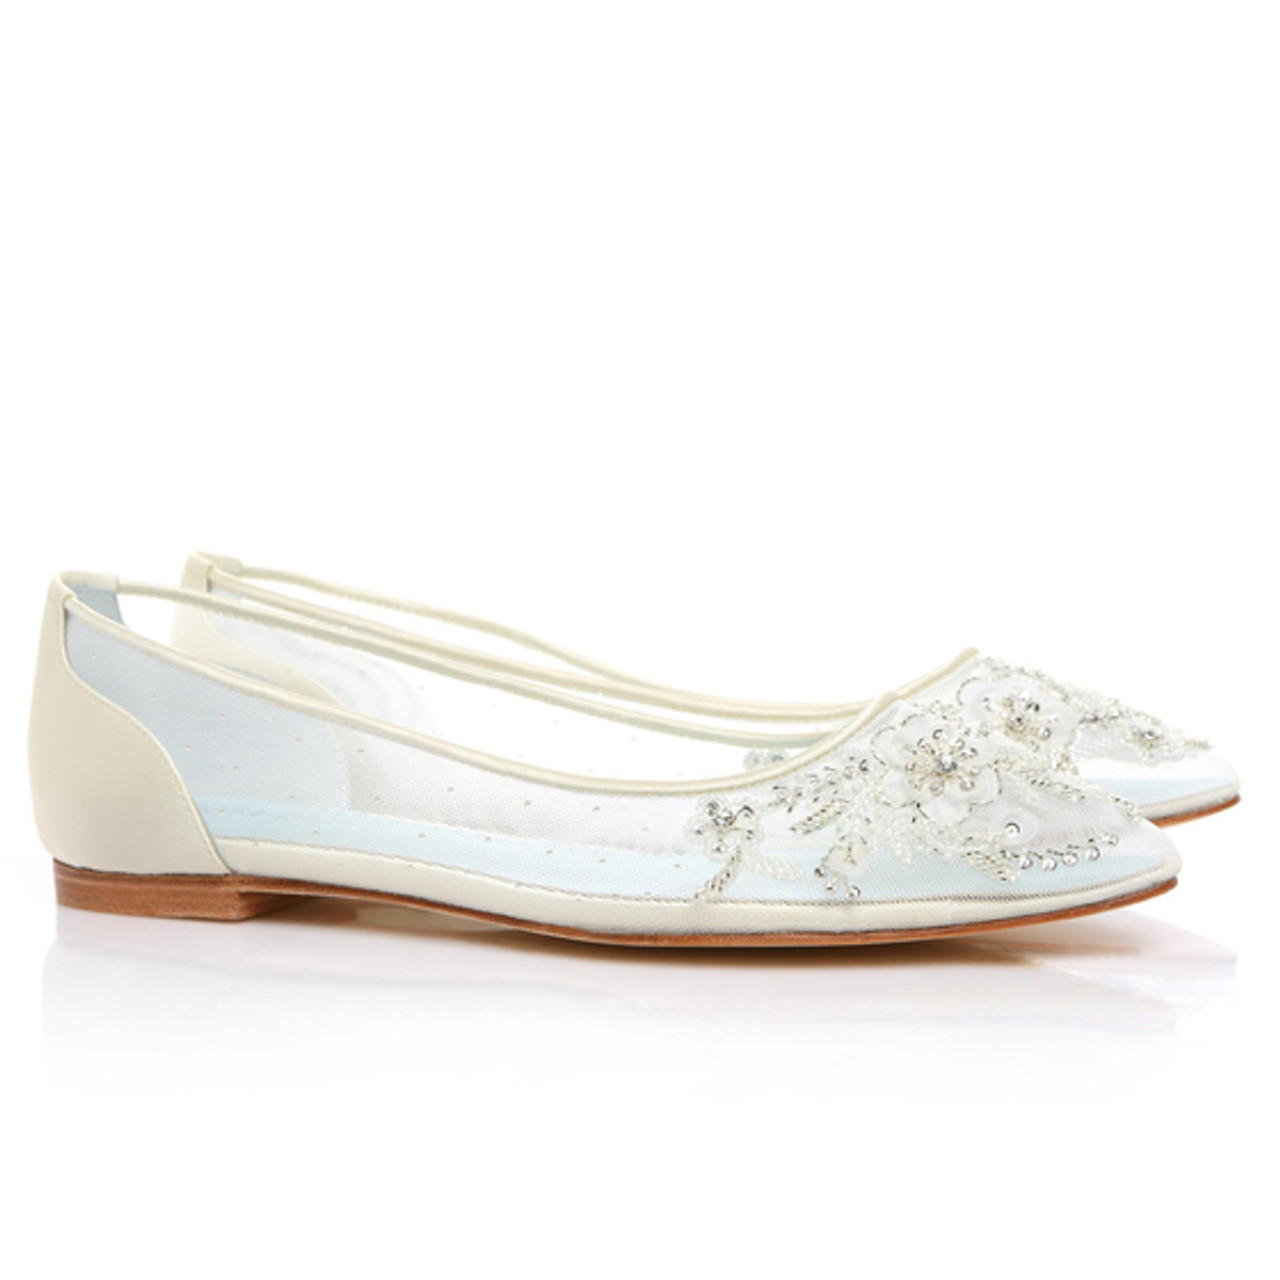 9a91d84a222 Adora  Eternal  bridal collection Romantic mesh flats with floral beading  Hand beaded and embroidered